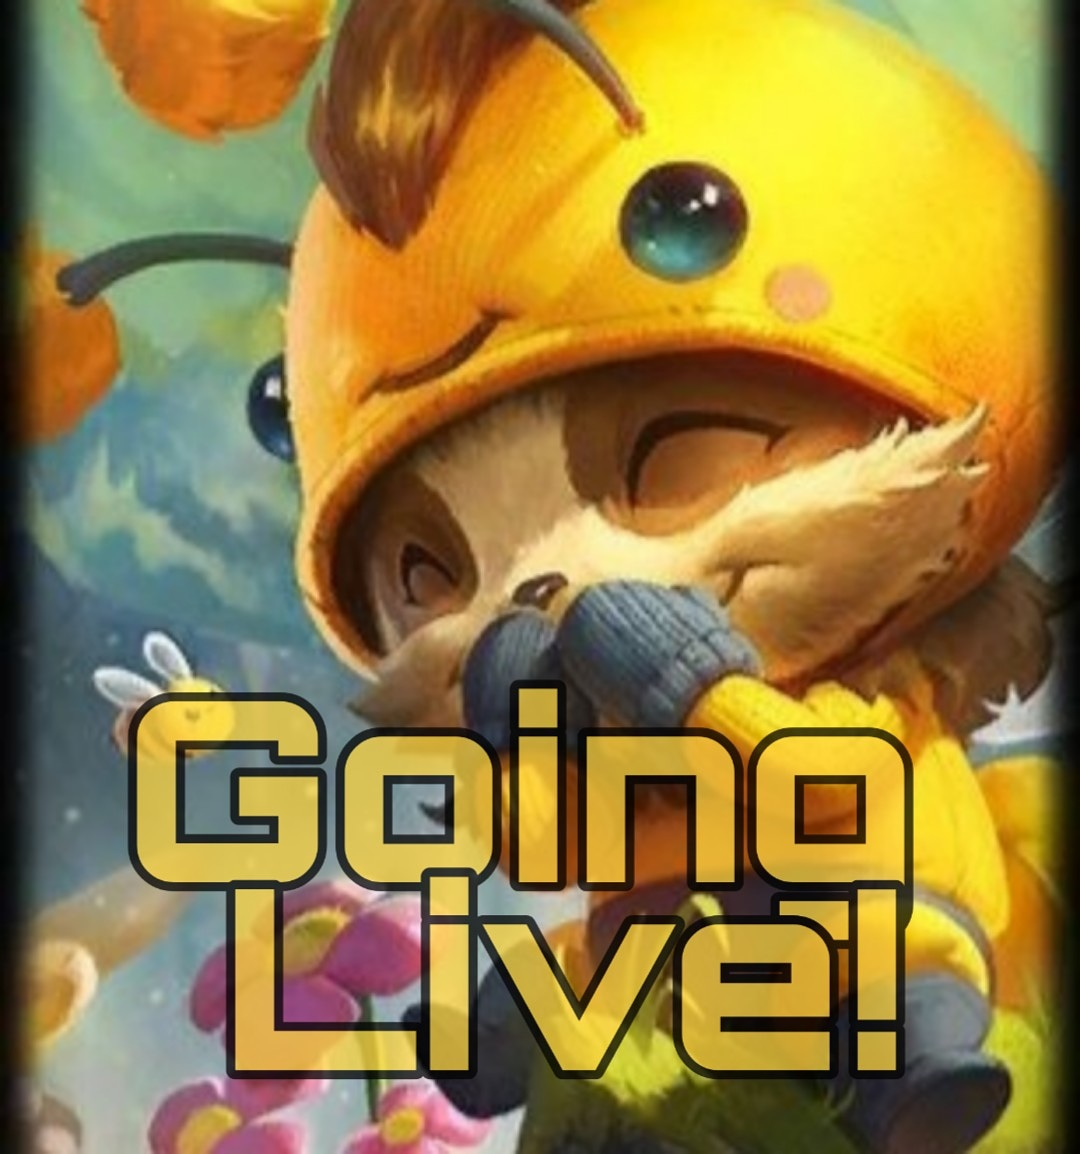 🐝🍯 Takin it back tonight to some League of Legends! Come by the stream and chat with me and watch some gameplay! Super excited to play tonight! 🍯🐝   #leagueoflegends #twitch #twitchtv #twitchaffiliate #twitchstreamer #League_of_Legends #riotgames